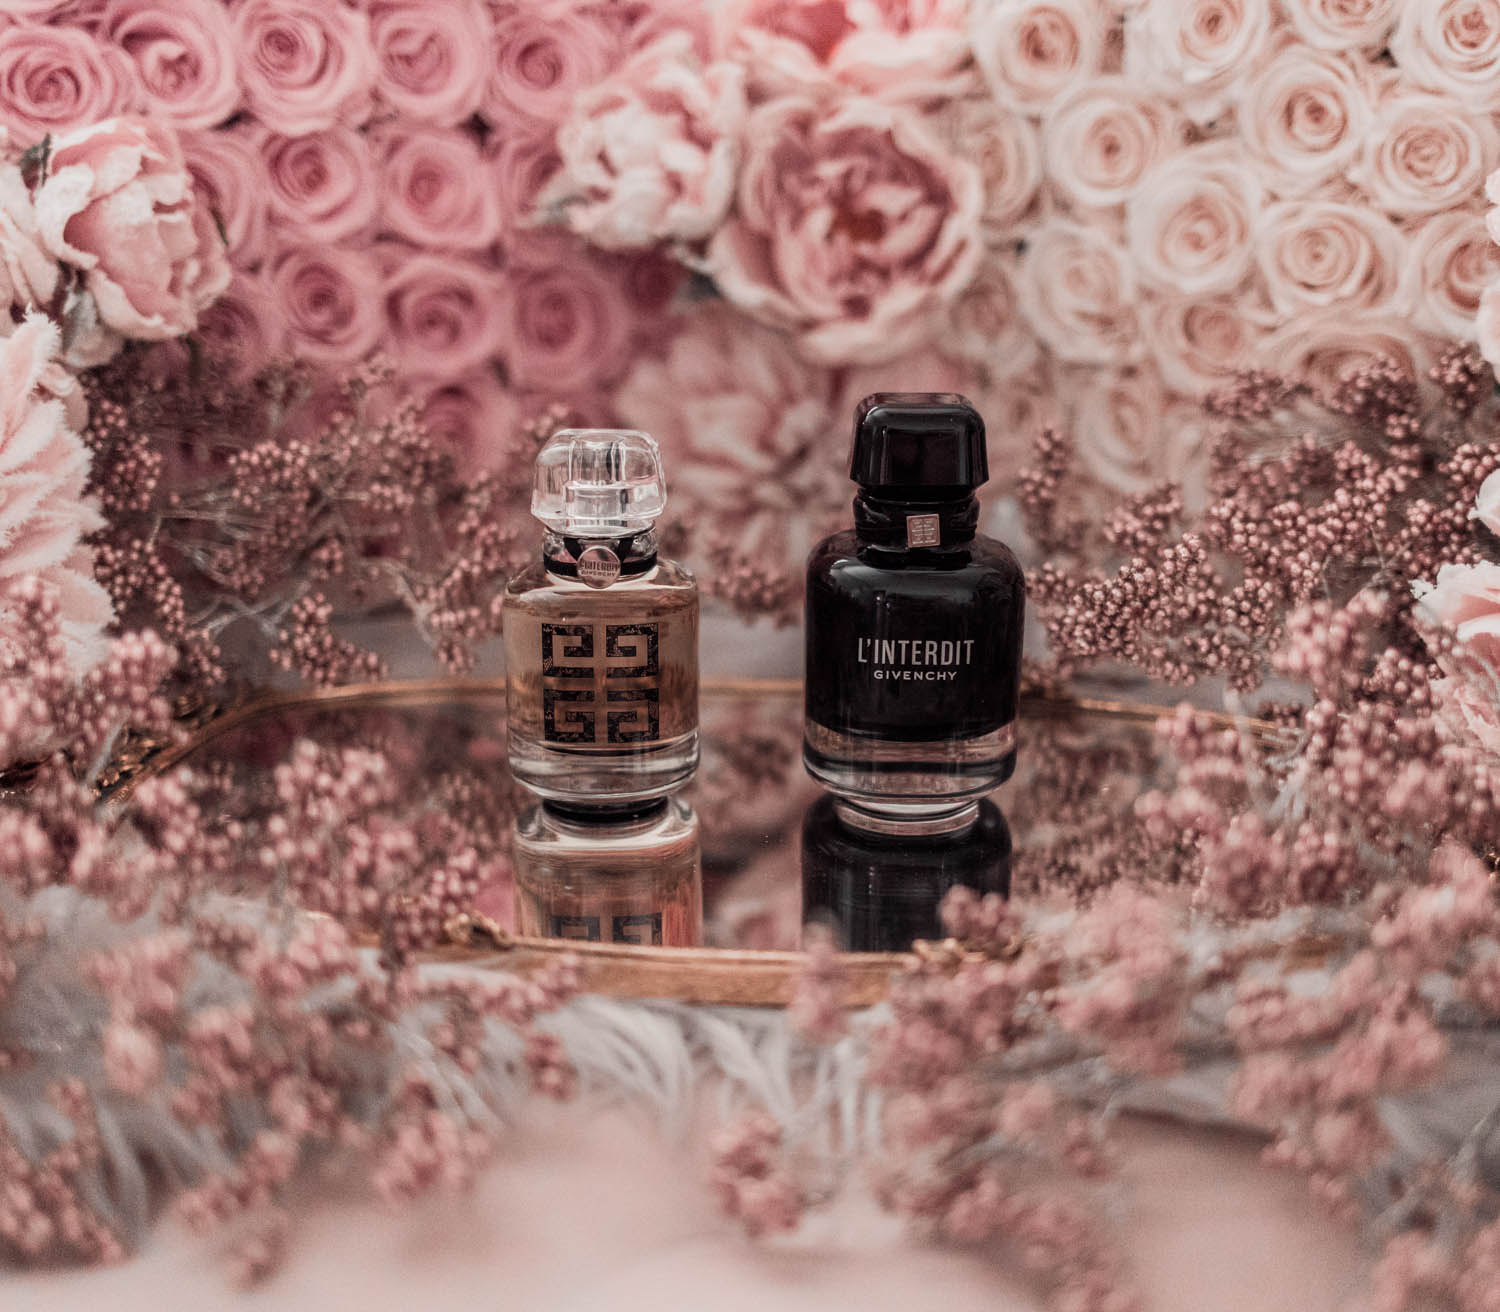 Feminine fashion blogger Elizabeth Hugen of Lizzie in Lace shares the best feminine perfumes and her girly fragrance collection including Givenchy L'interdit